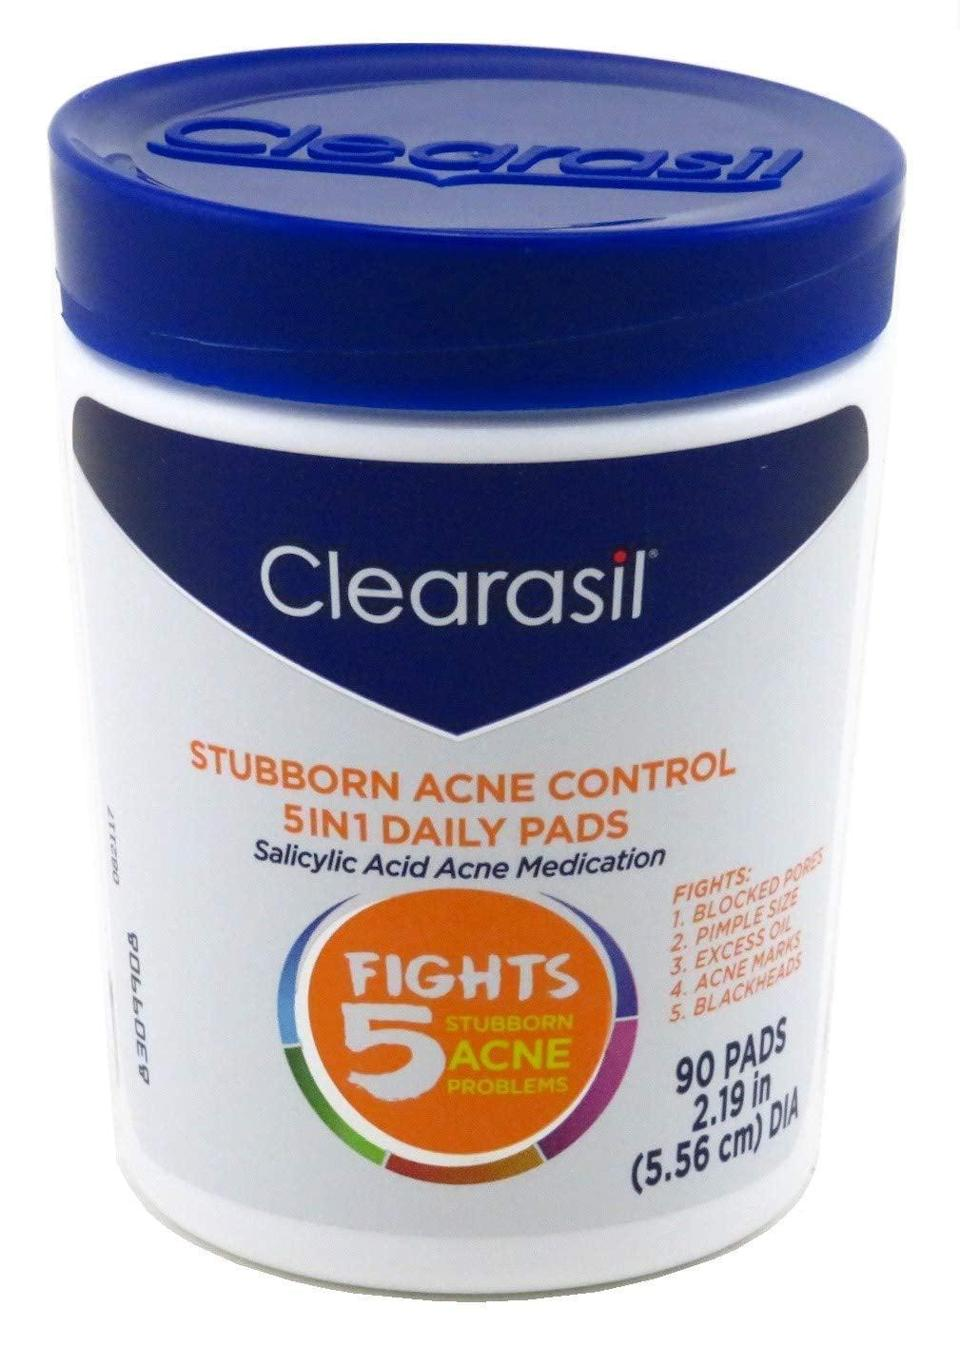 """<p>""""Suddenly, as I entered my mid-20s, pesky zits started showing up on my cheeks and chin. I tried all sorts of products, including expensive creams, toners, and scrubs. It wasn't until I tried my sister's drugstore pick that I discovered the answer to my problem. <span>Clearasil Stubborn Acne Control 5-in-1 Daily Facial Cleansing Pads</span> ($8) sit on my vanity now, and I use them religiously every night. </p> <p>These <a href=""""https://www.popsugar.com/beauty/Clearasil-Stubborn-Acne-Control-Daily-Pads-Review-44759603"""" class=""""link rapid-noclick-resp"""" rel=""""nofollow noopener"""" target=""""_blank"""" data-ylk=""""slk:little circular pads"""">little circular pads</a> contain 1.9 percent salicylic acid, which unclogs pores and dissolves the unwanted gunk you're dealing with. I use one every single night after I wash my face. All I do is wipe the pad over my problem areas and let it dry for a few minutes before I lie down or touch my face. My skin never gets too dried out or itchy from this formula, which is something I have struggled with in the past.</p> <p>Clearasil promises that this miracle product will reduce excess oil and shine, unblock pores, even out your skin tone, remove dirt, and exfoliate for smoothness. I can tell you that it does all that and more. Not only do my pimples clear up rapidly, but my skin is also firmer and glowing."""" - MCW</p>"""